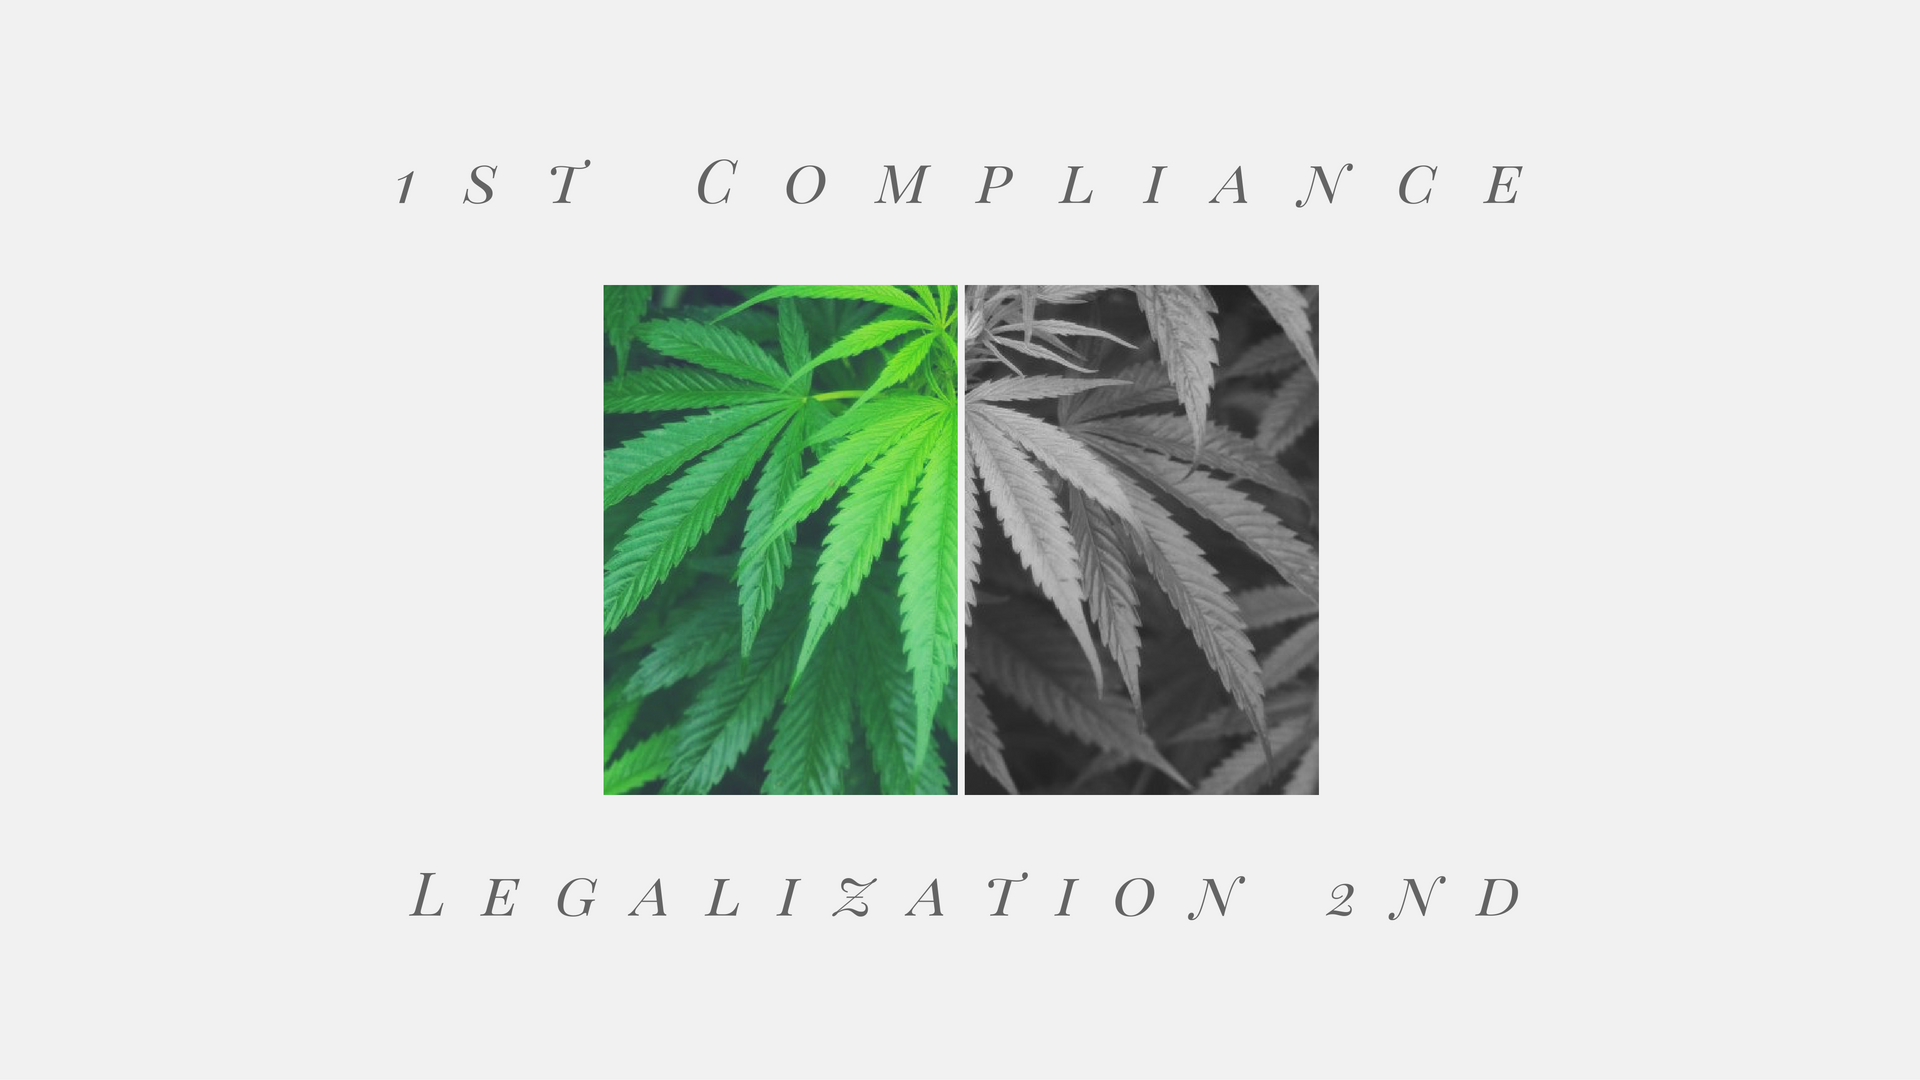 Legalization Requires Compliance